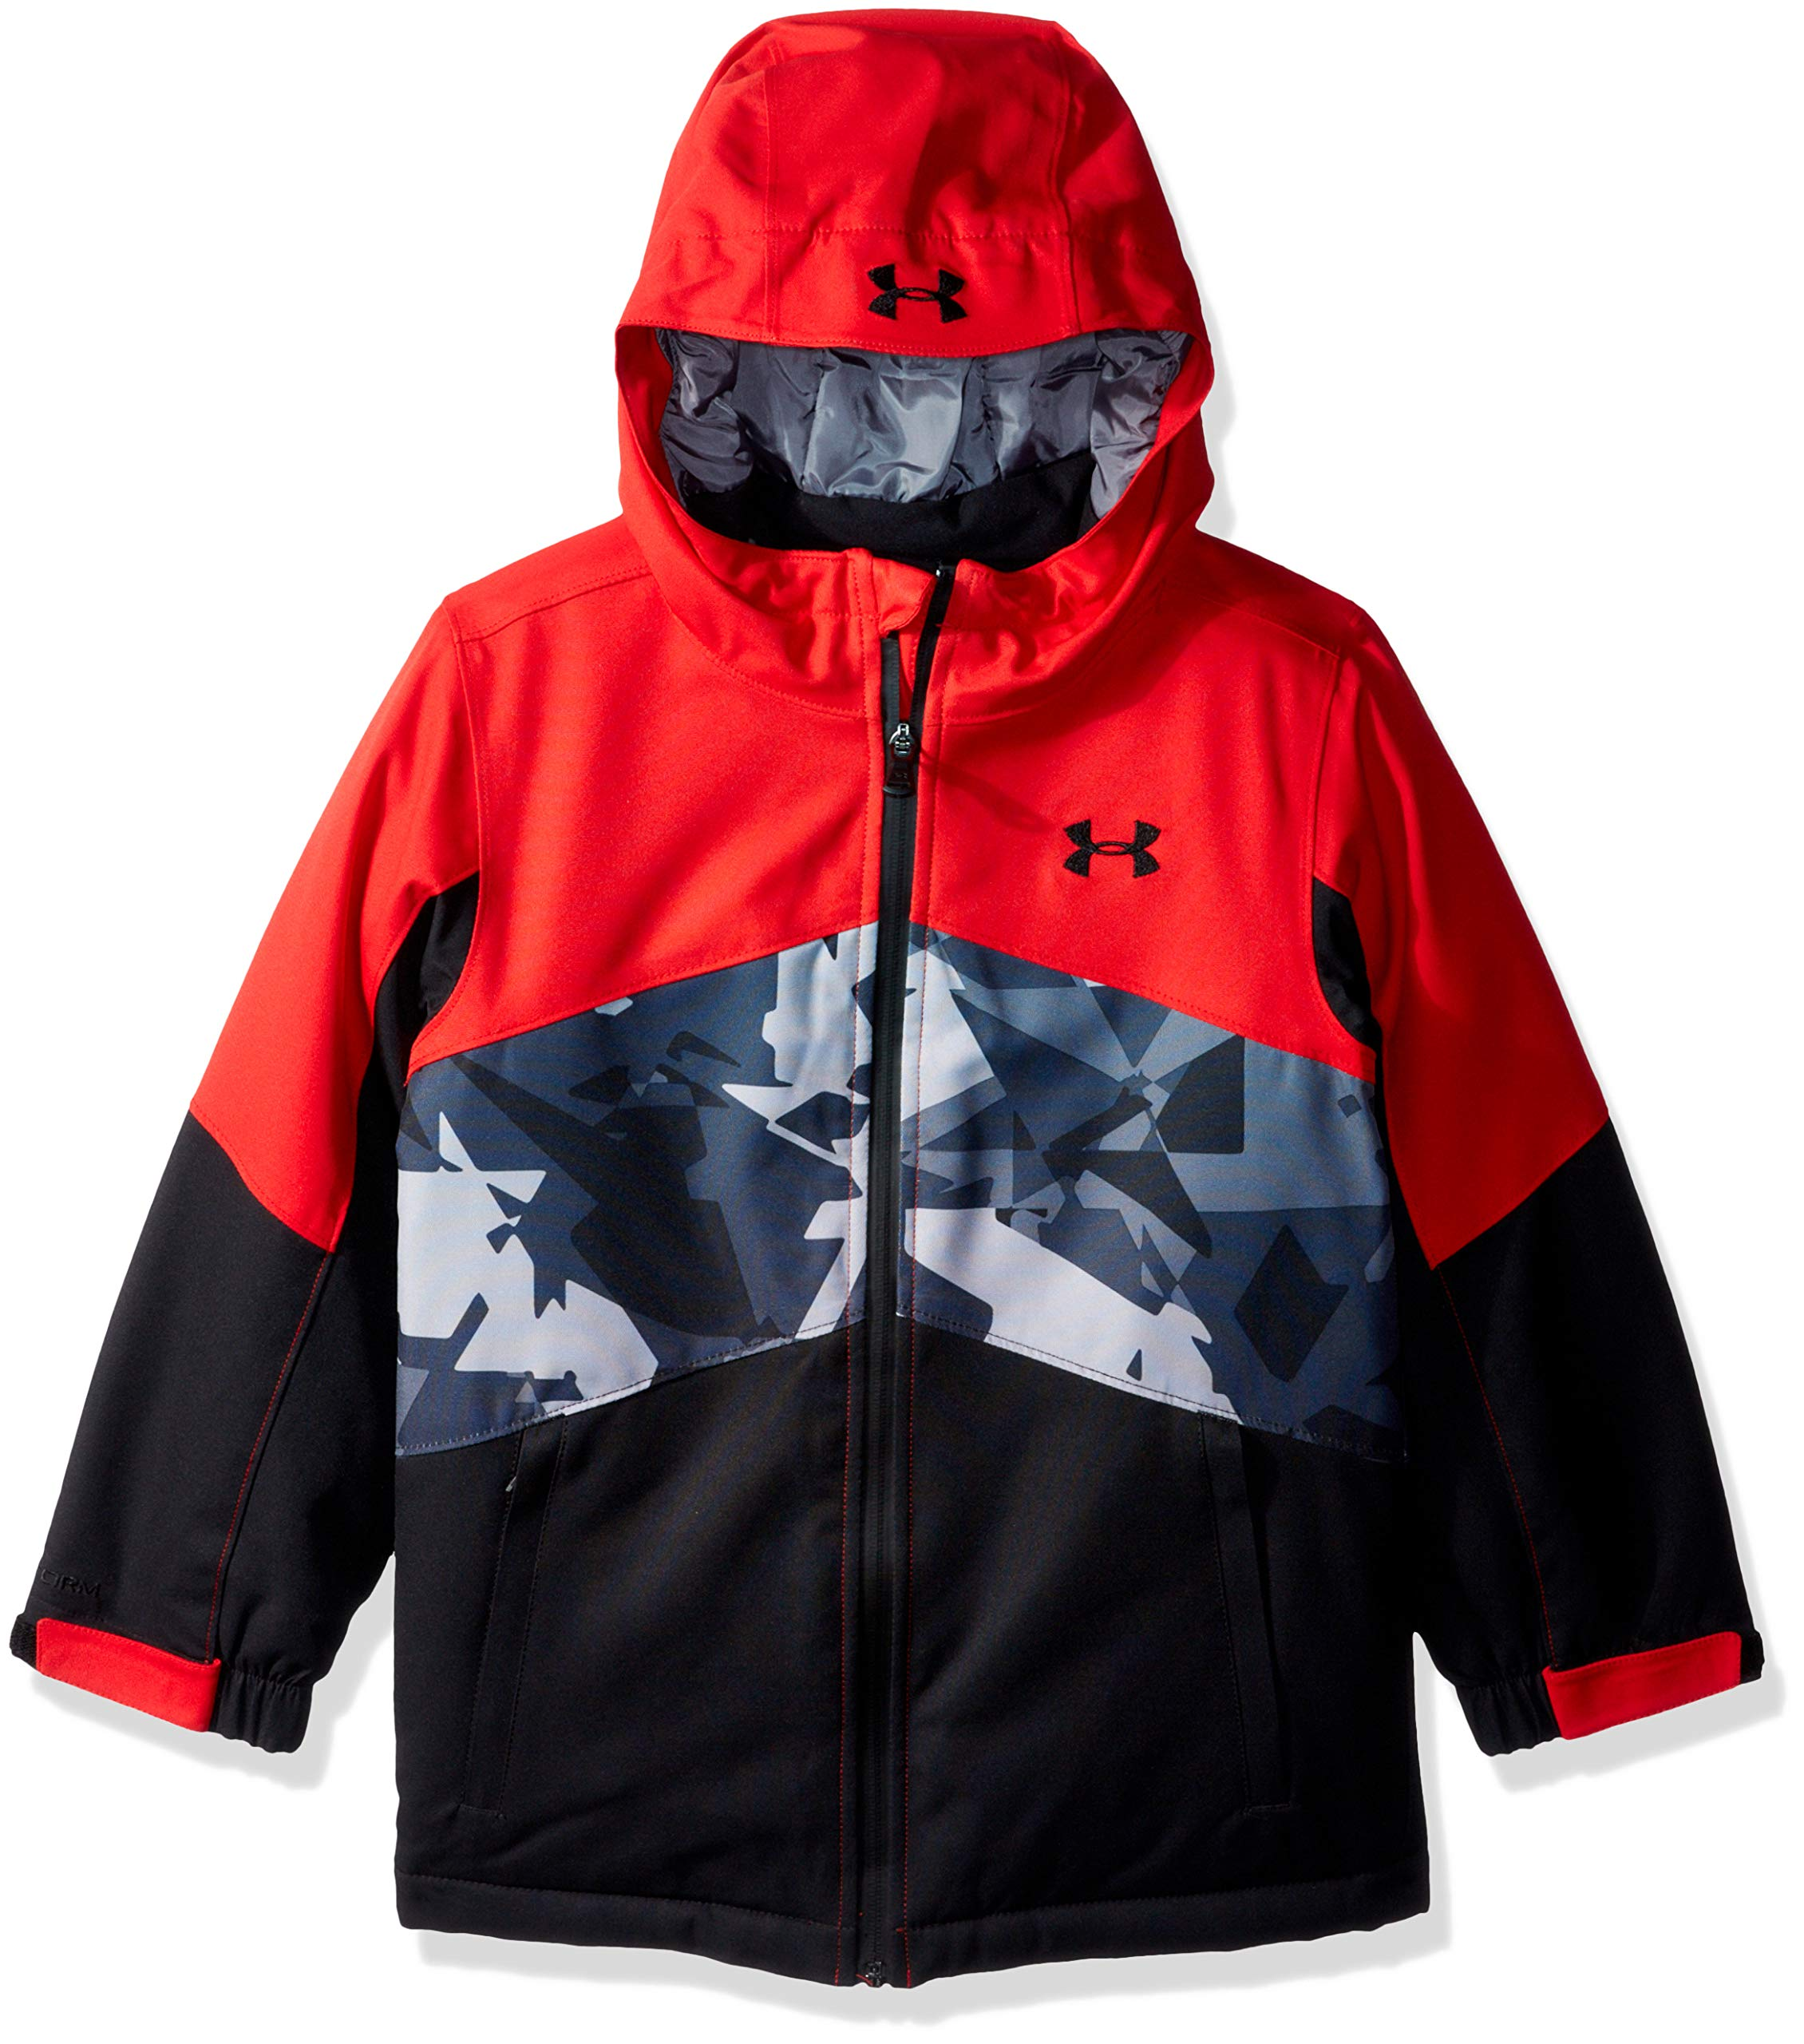 Under Armour Boys' Big Zumatrek Jacket, red, Medium (10/12)